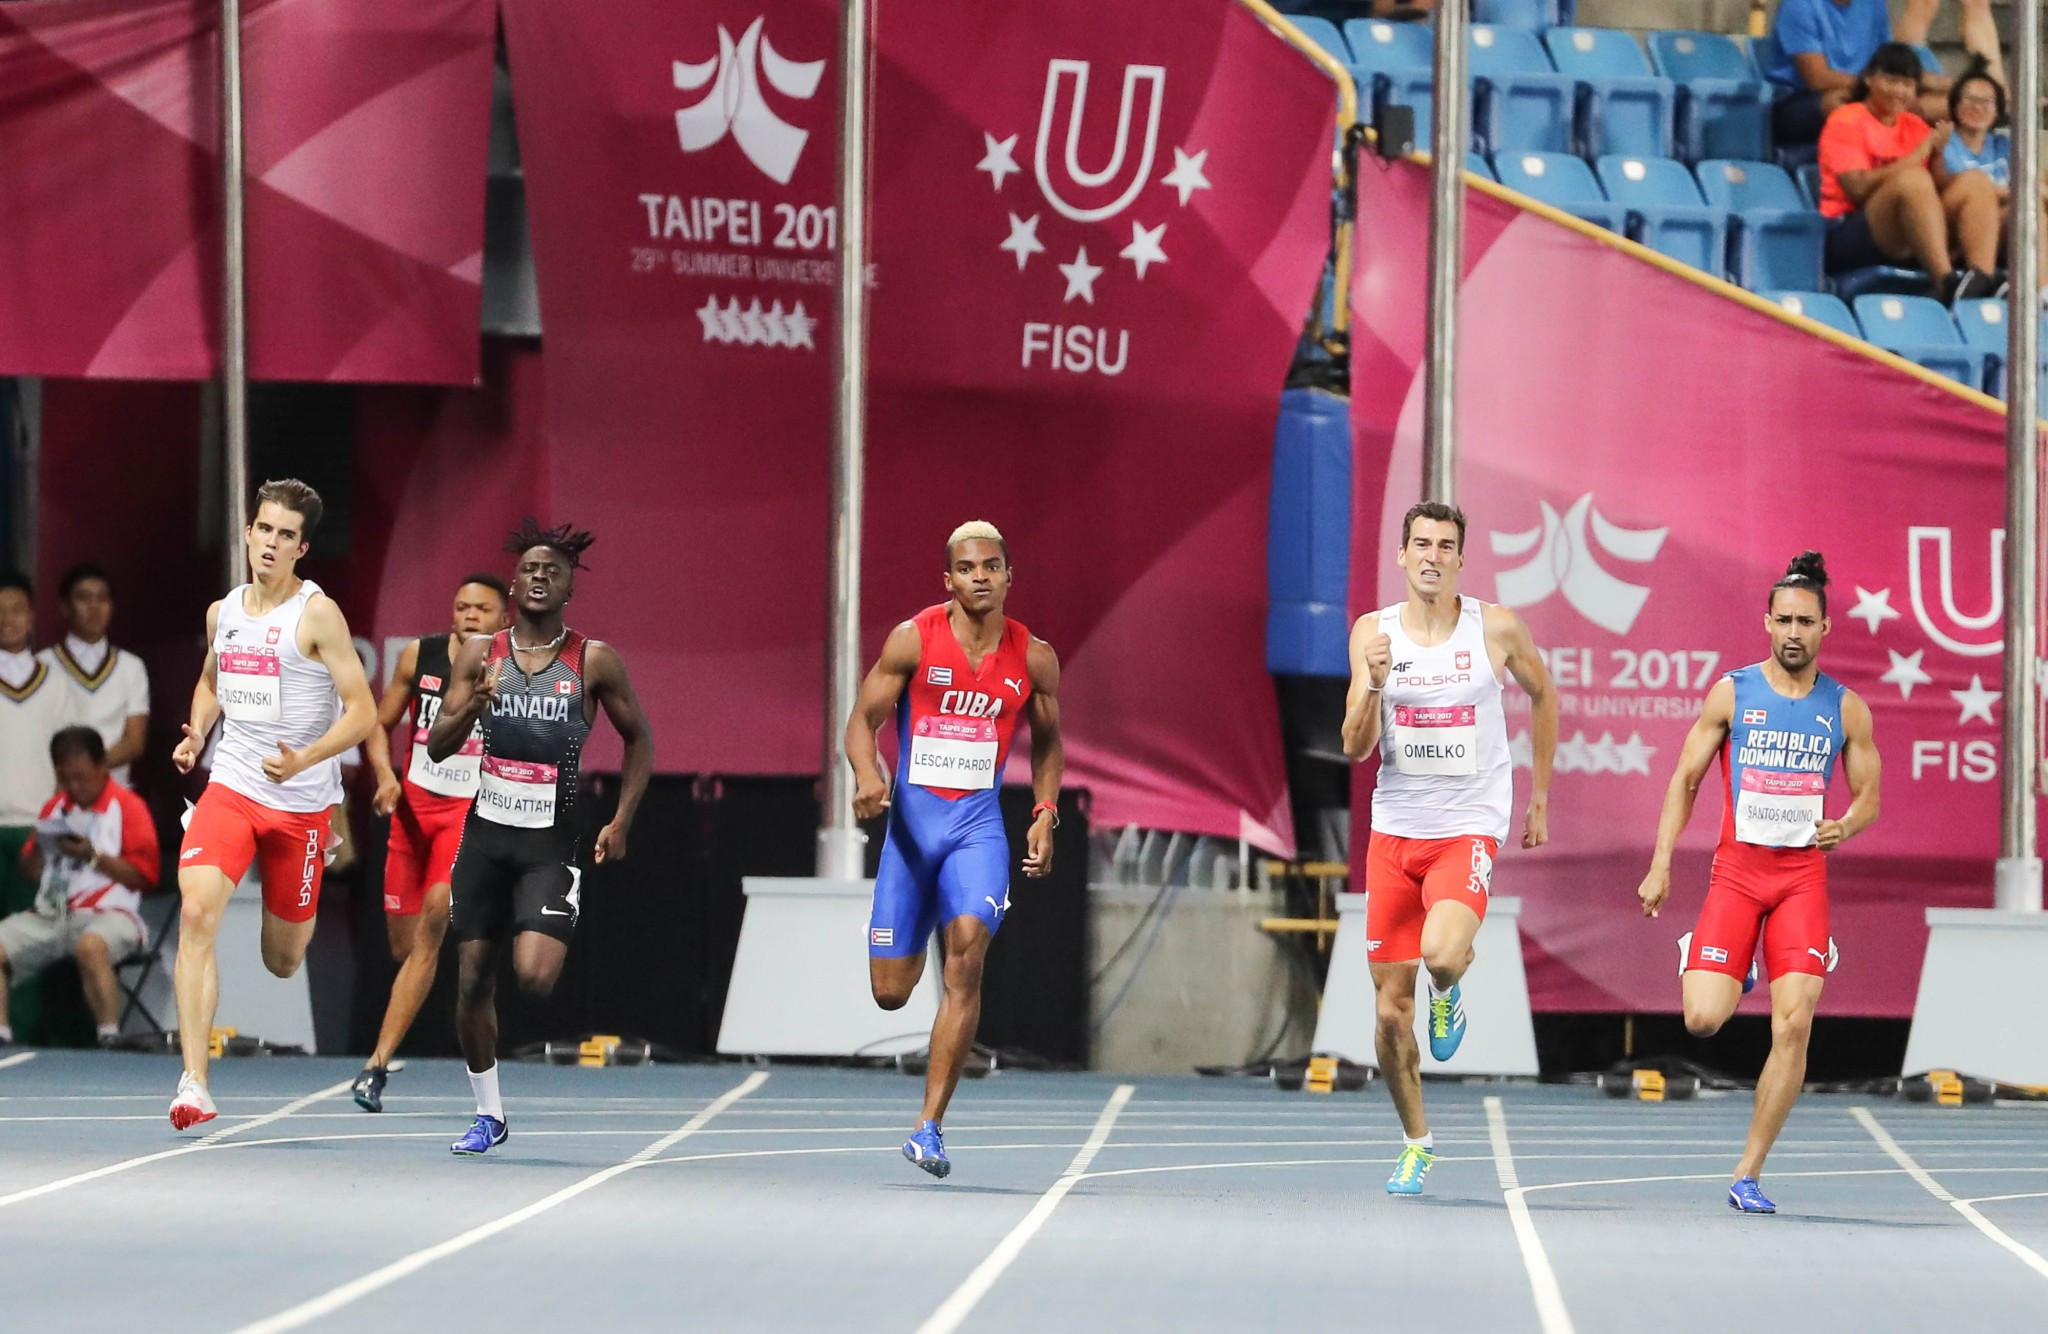 London 2012 silver medallist Santos defends Universiade 400m title